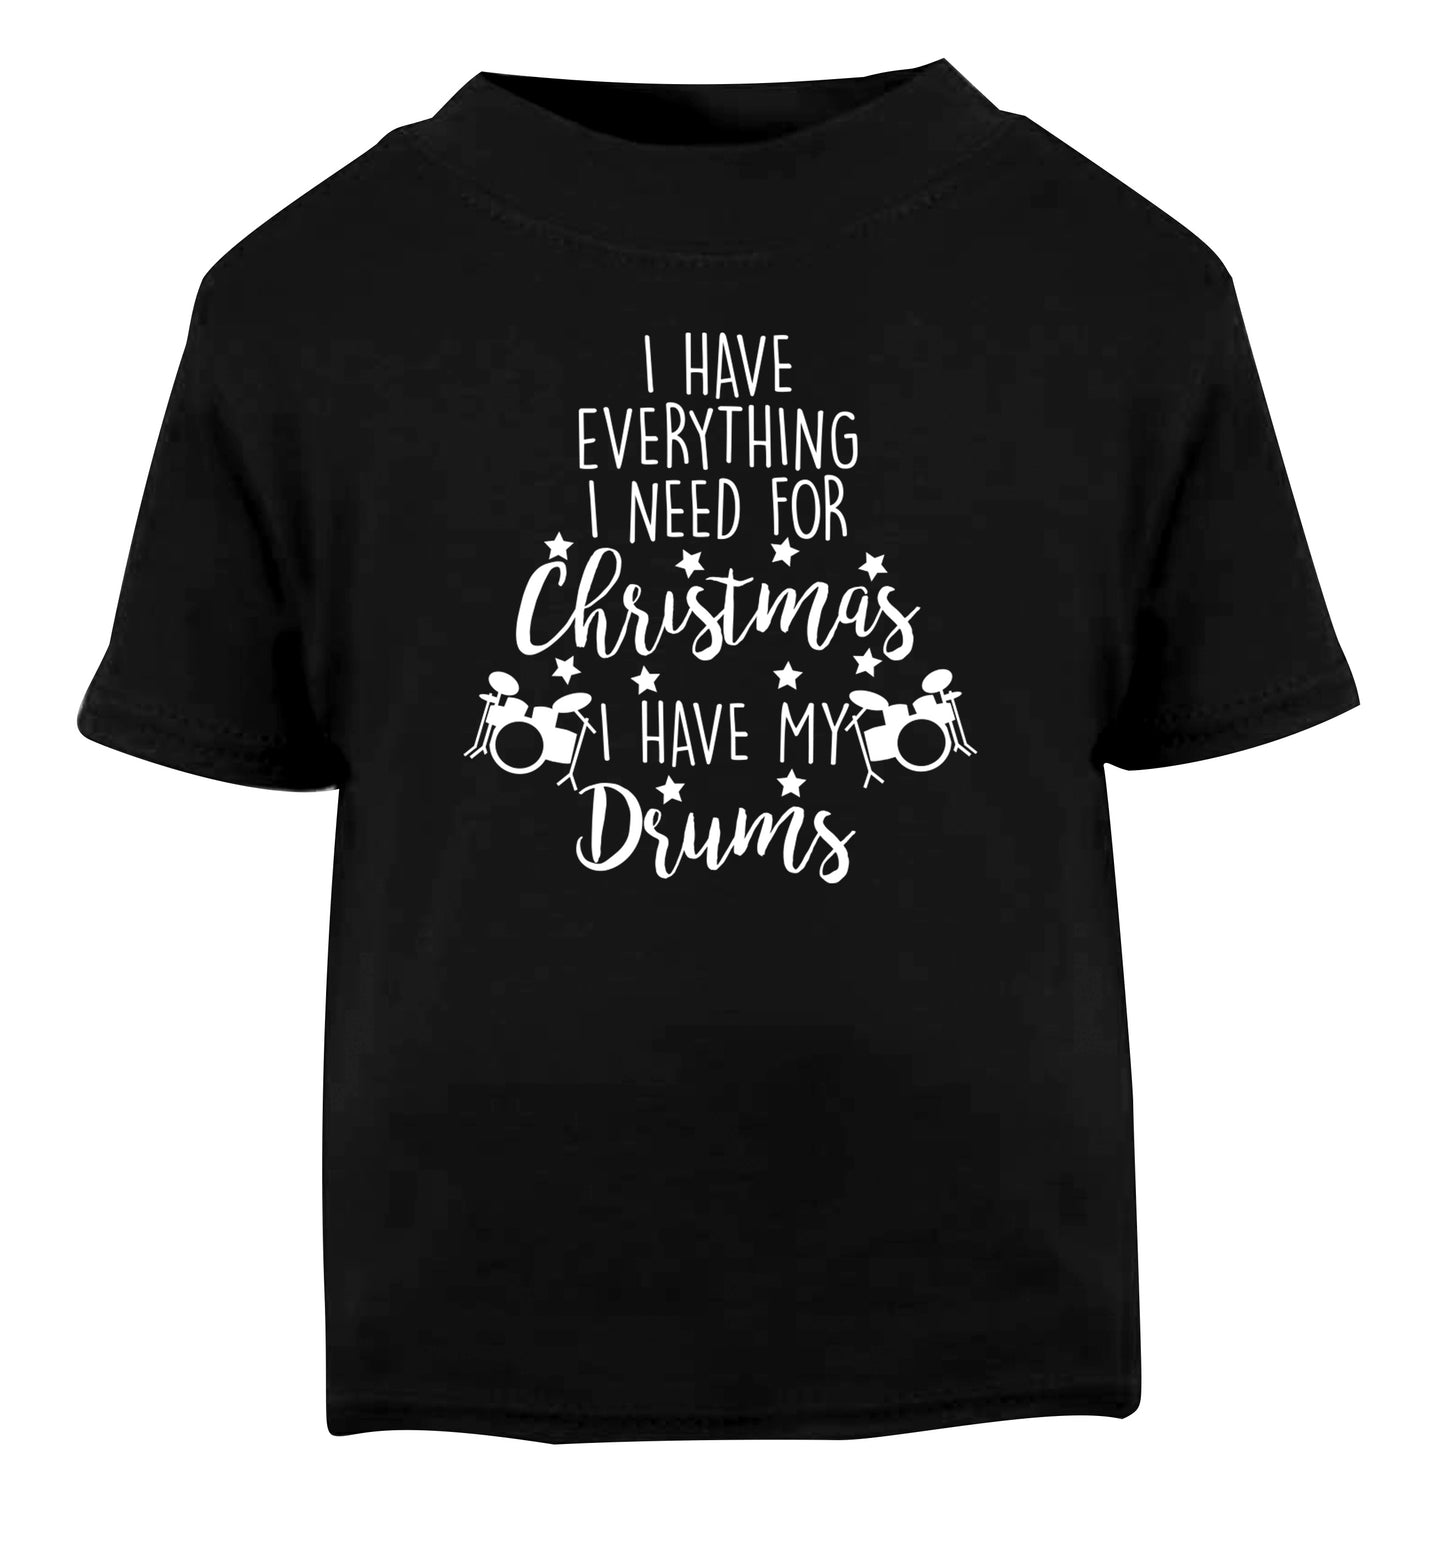 I have everything I need for Christmas I have my drums! Black Baby Toddler Tshirt 2 years